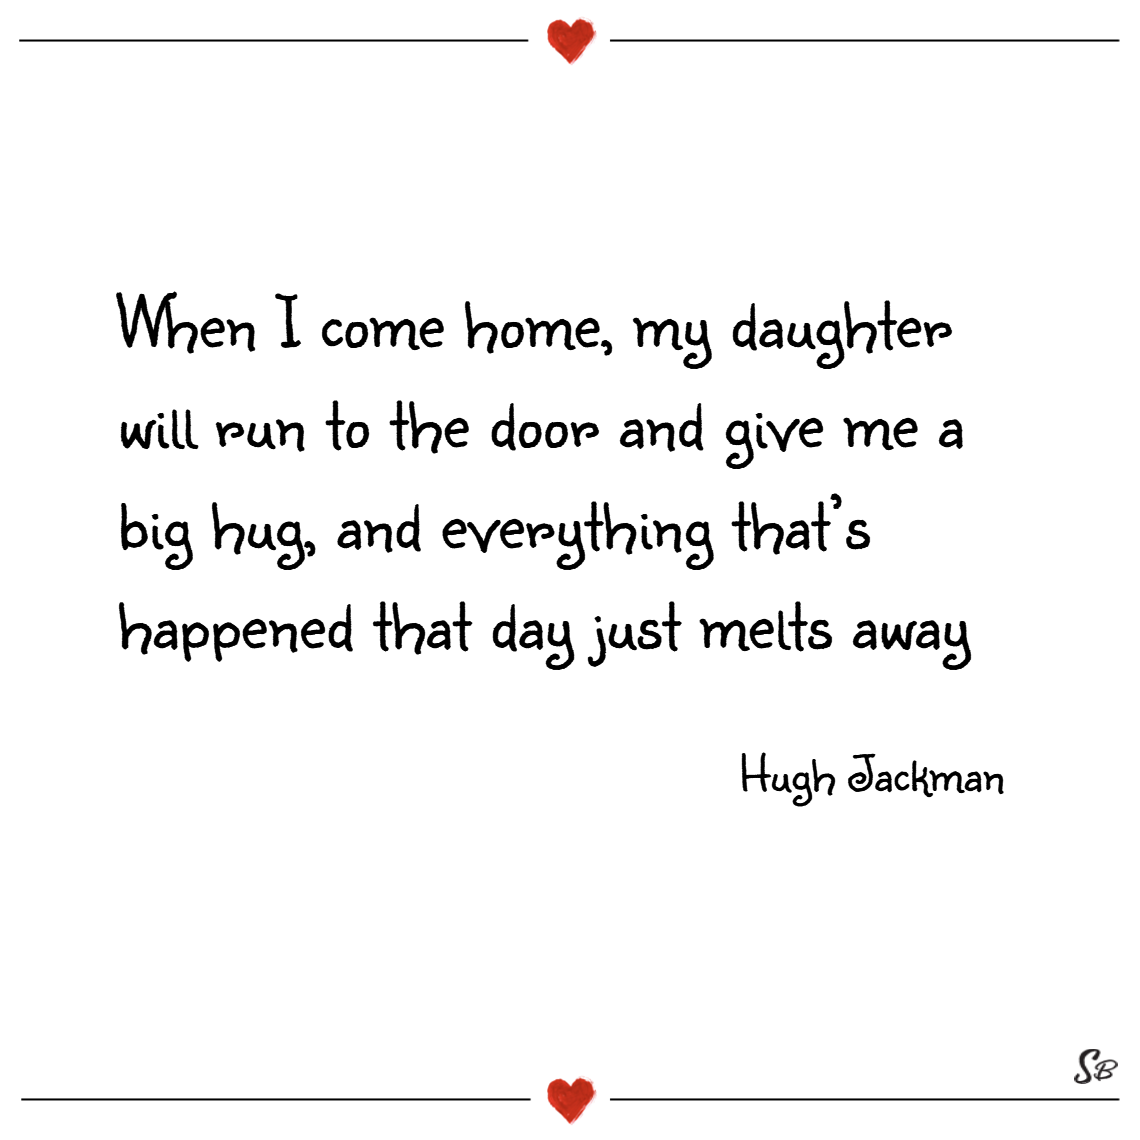 When i come home, my daughter will run to the door and give me a big hug, and everything that's happened that day just melts away. – hugh jackman father daughter quotes